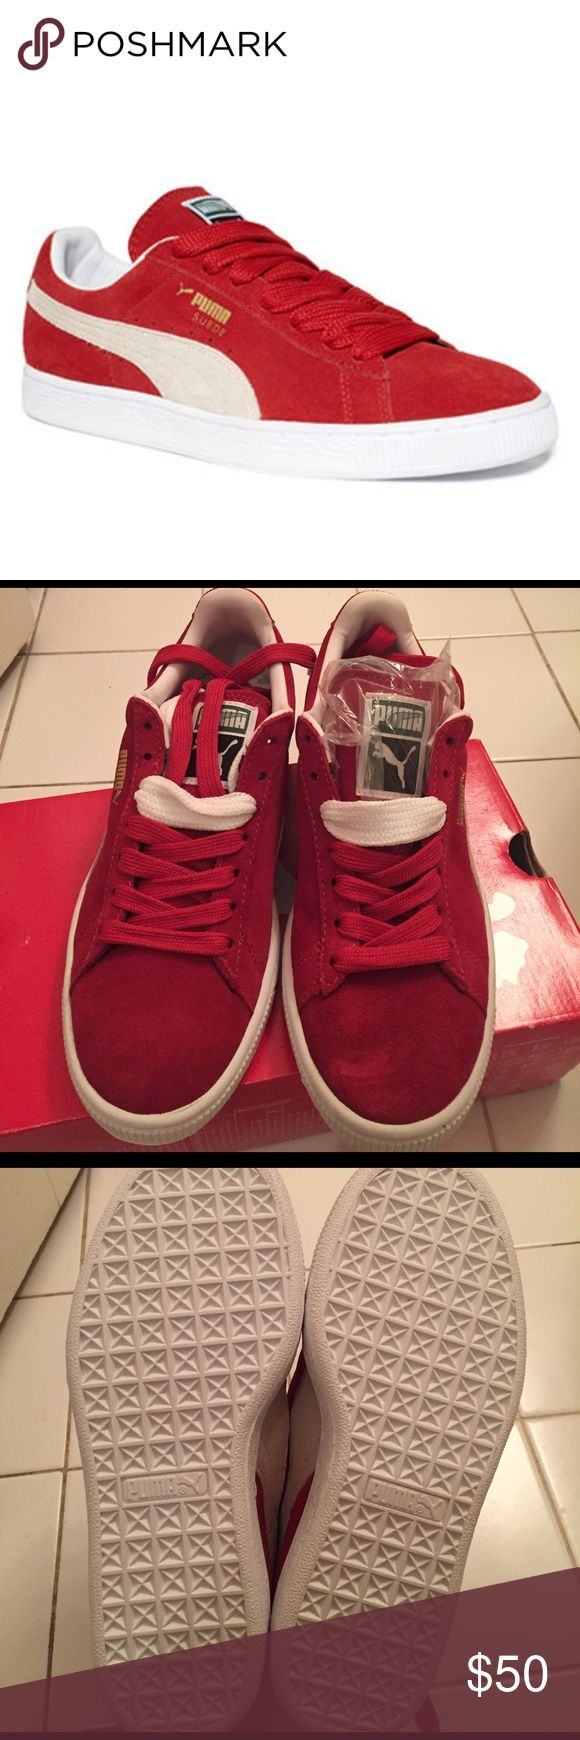 Puma suede classic sneakers High risk red-white-brand new, never worn Puma Shoes Sneakers